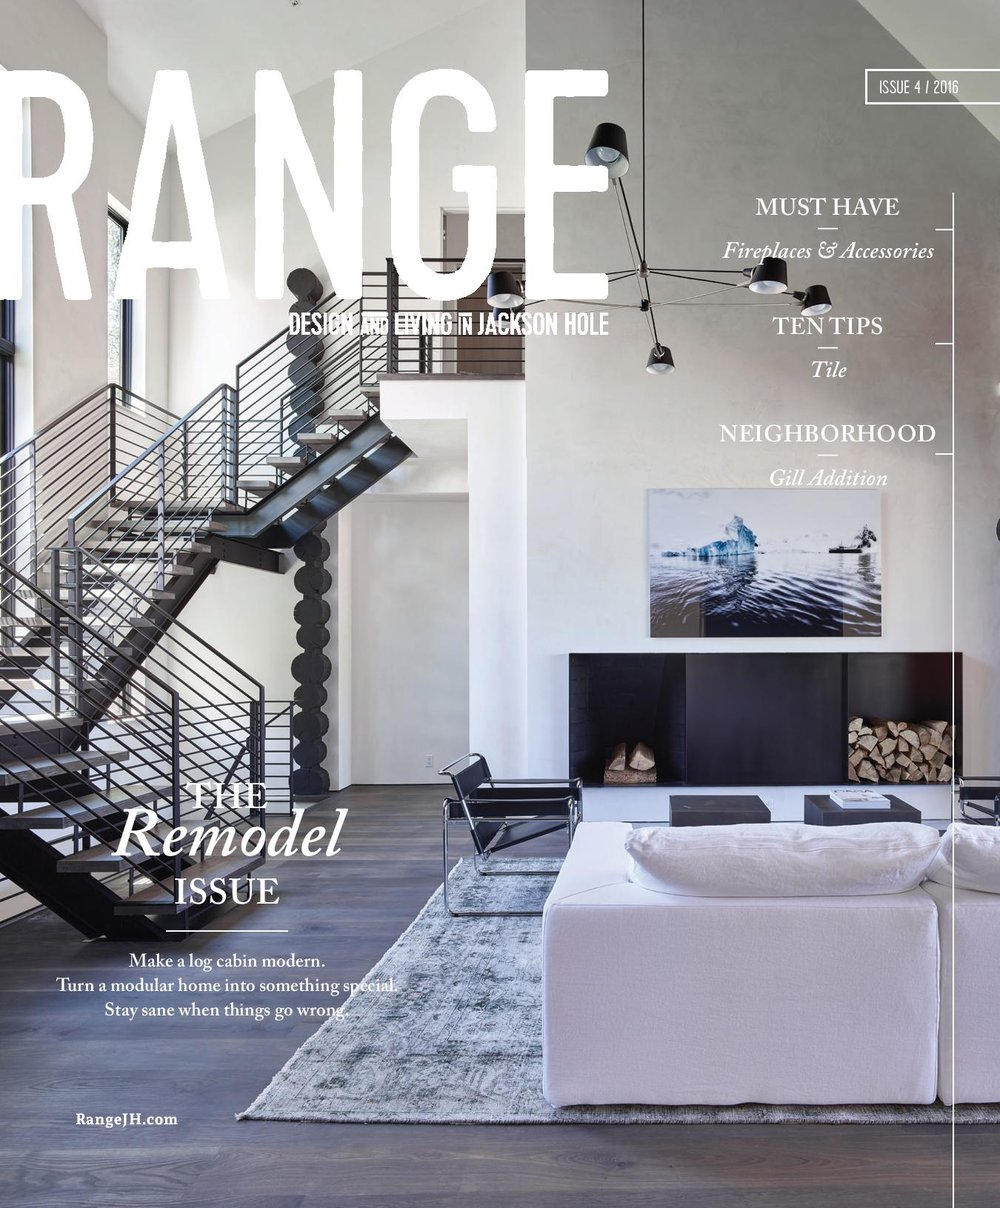 RangeIssue4_Cover.jpg